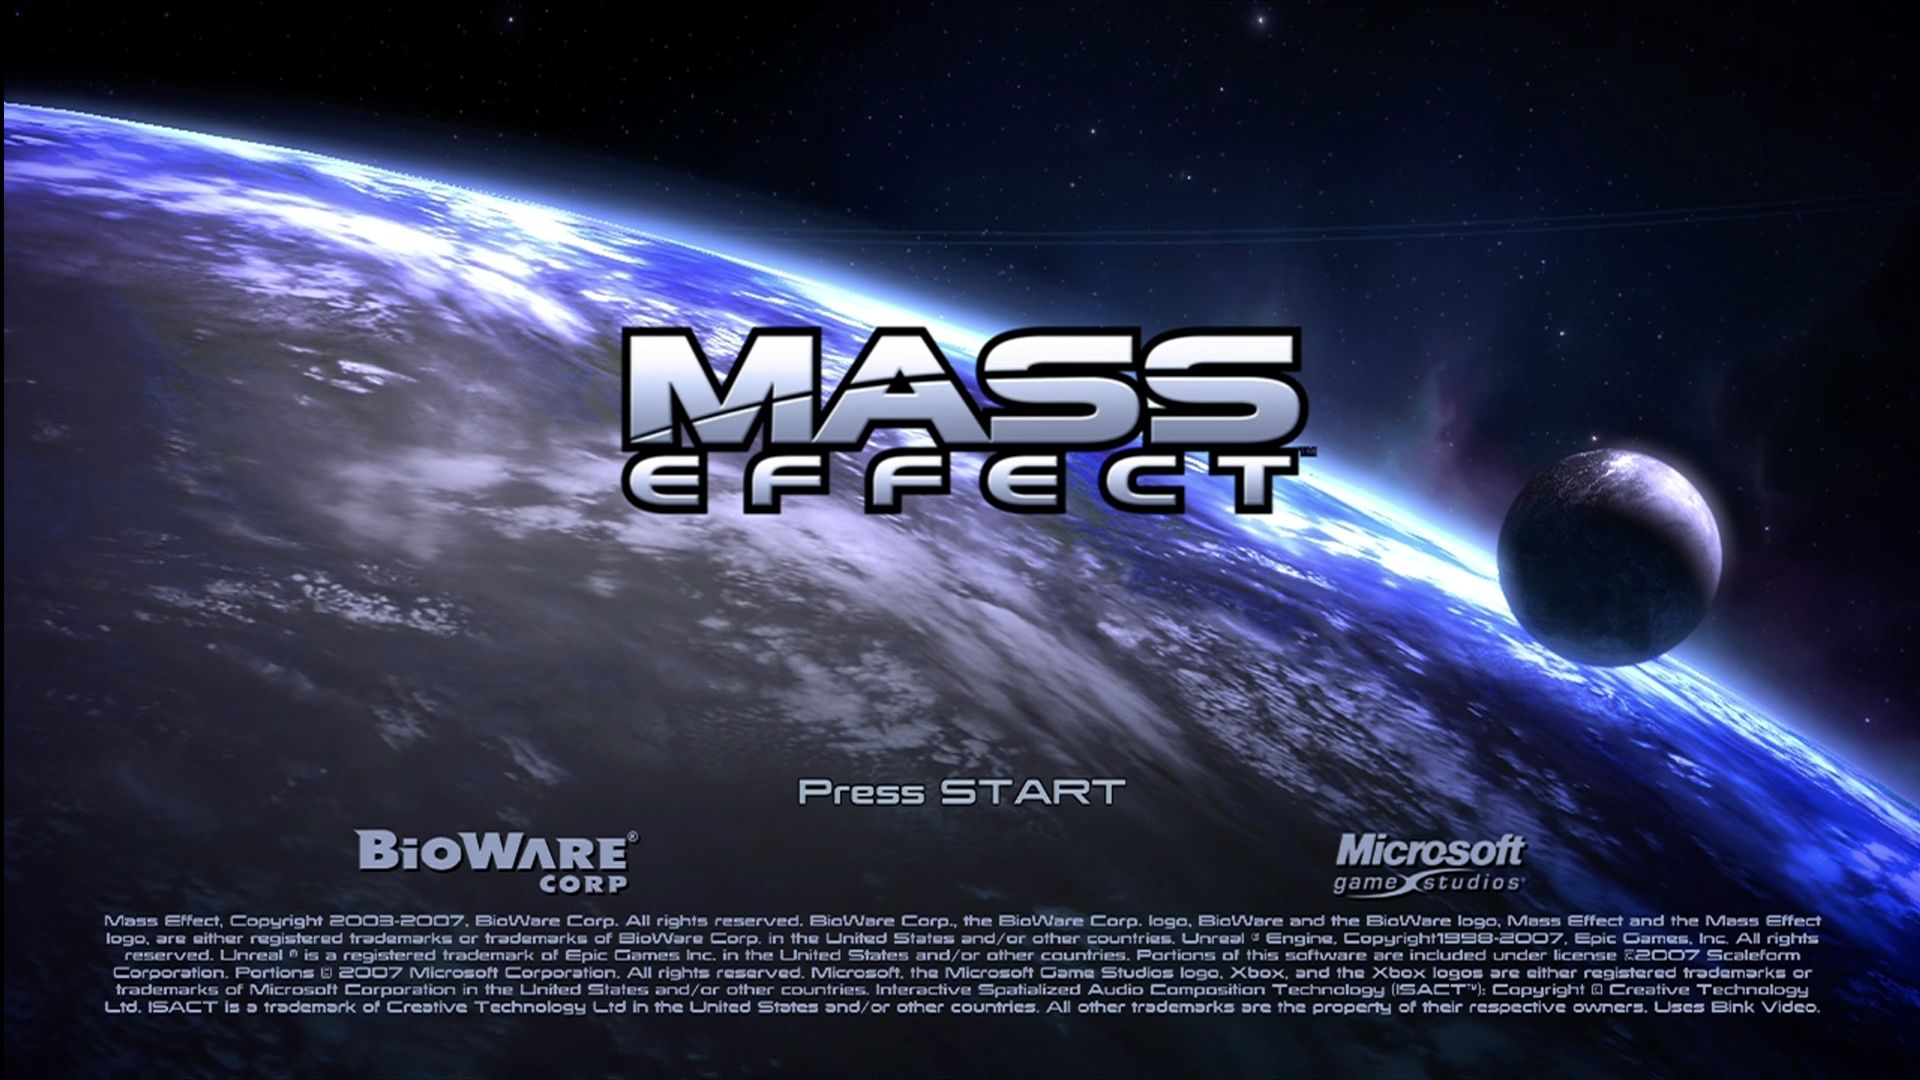 Mass Effect Xbox 360 Title screen